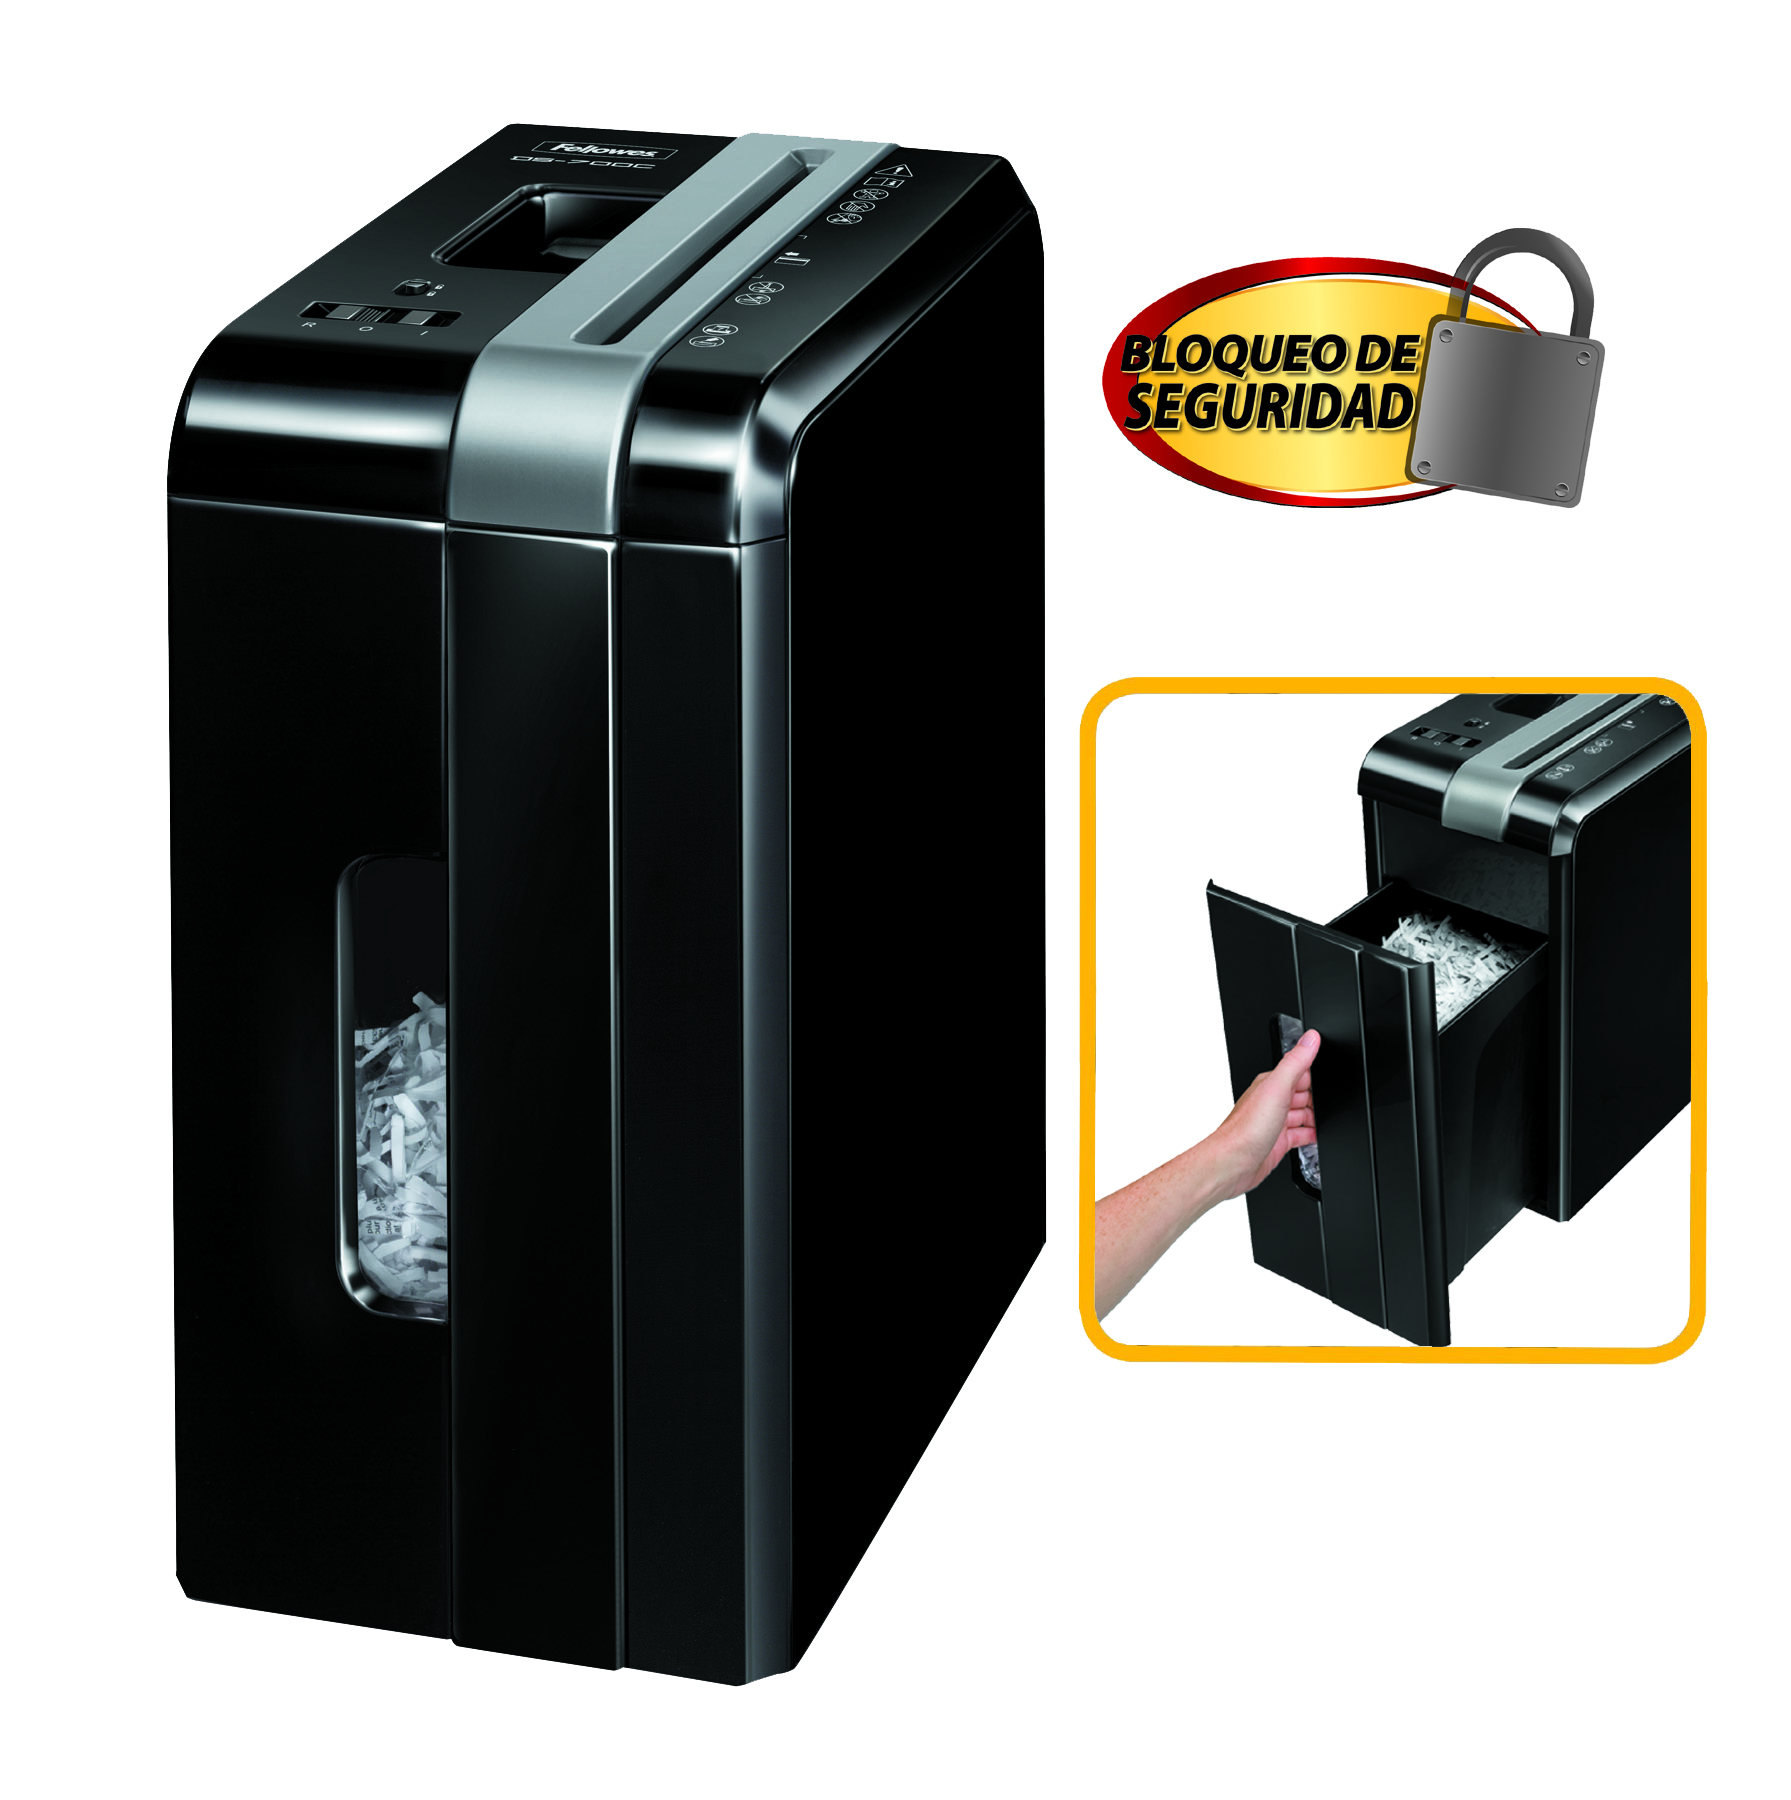 Destruidora de Papel Fellowes DS-700C, 7fls, 10L